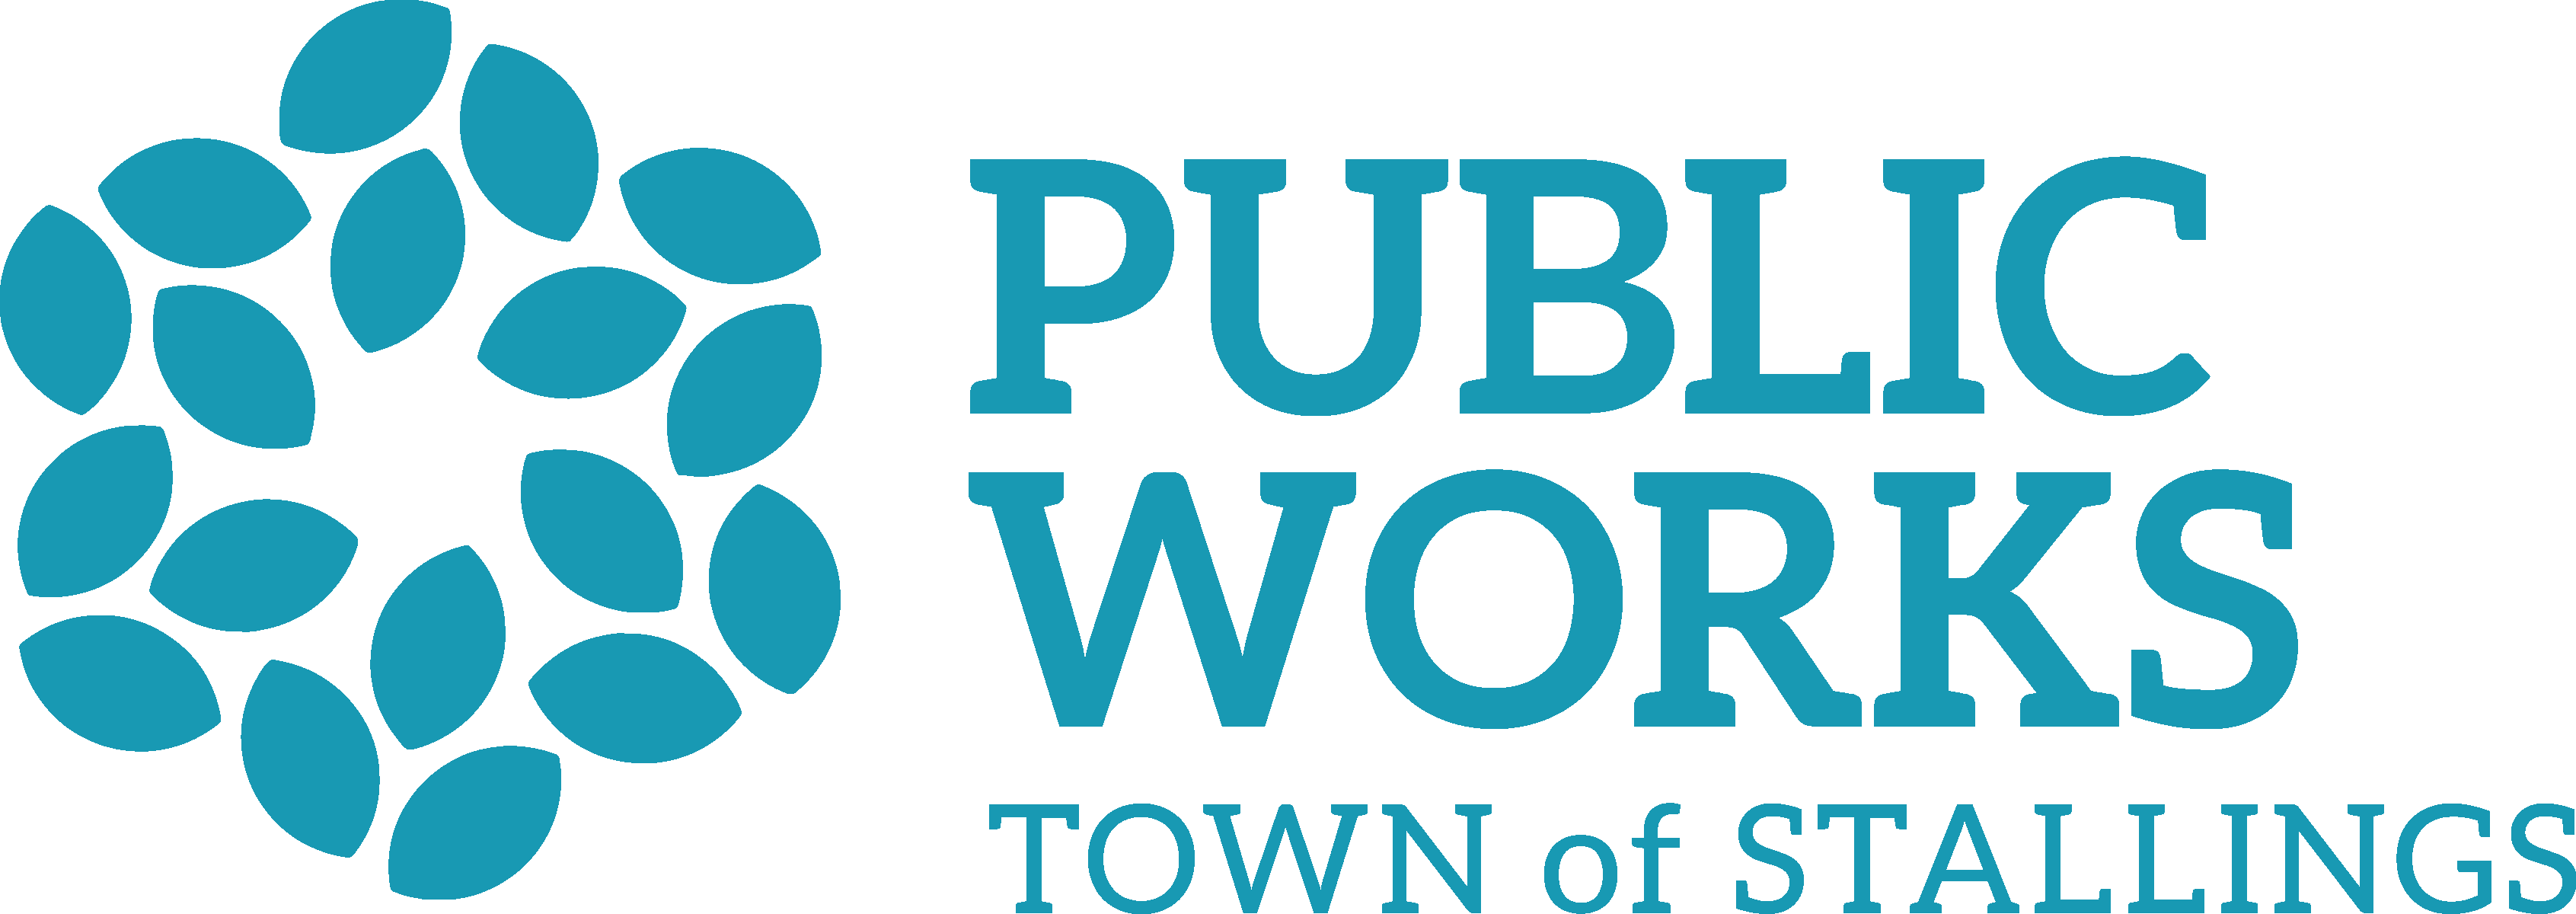 Stallings Public Works Logo